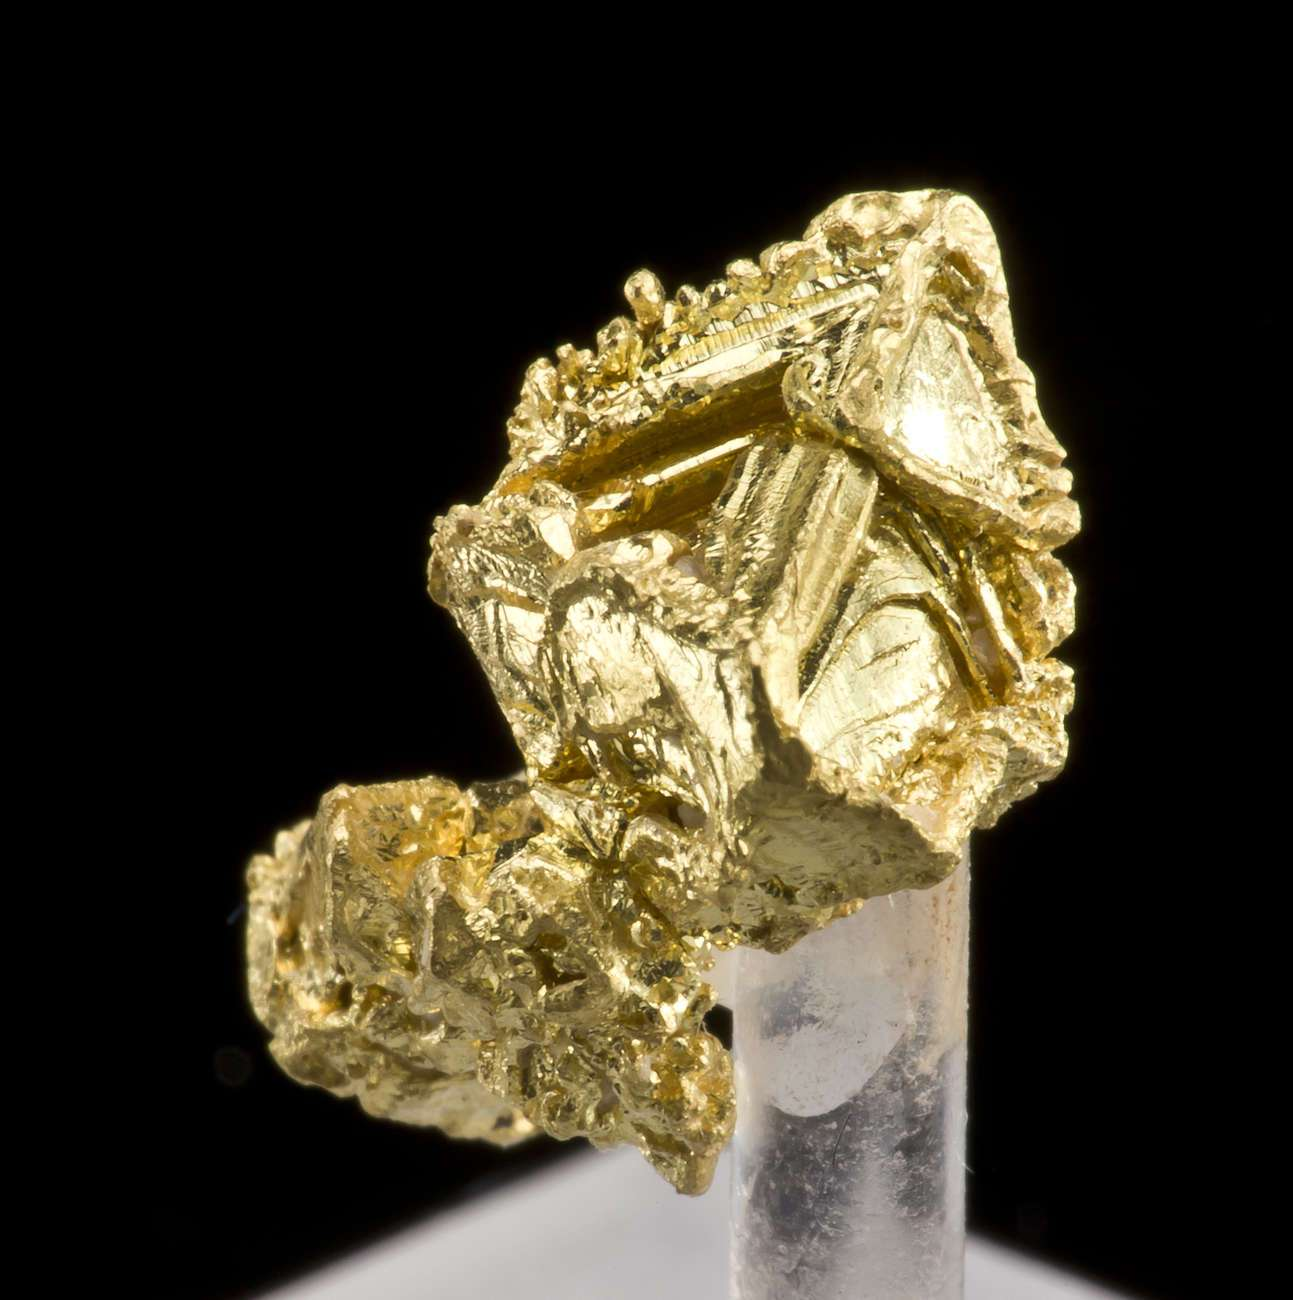 This robust 3 dimensional sharp gold octohedron showing complex hopper